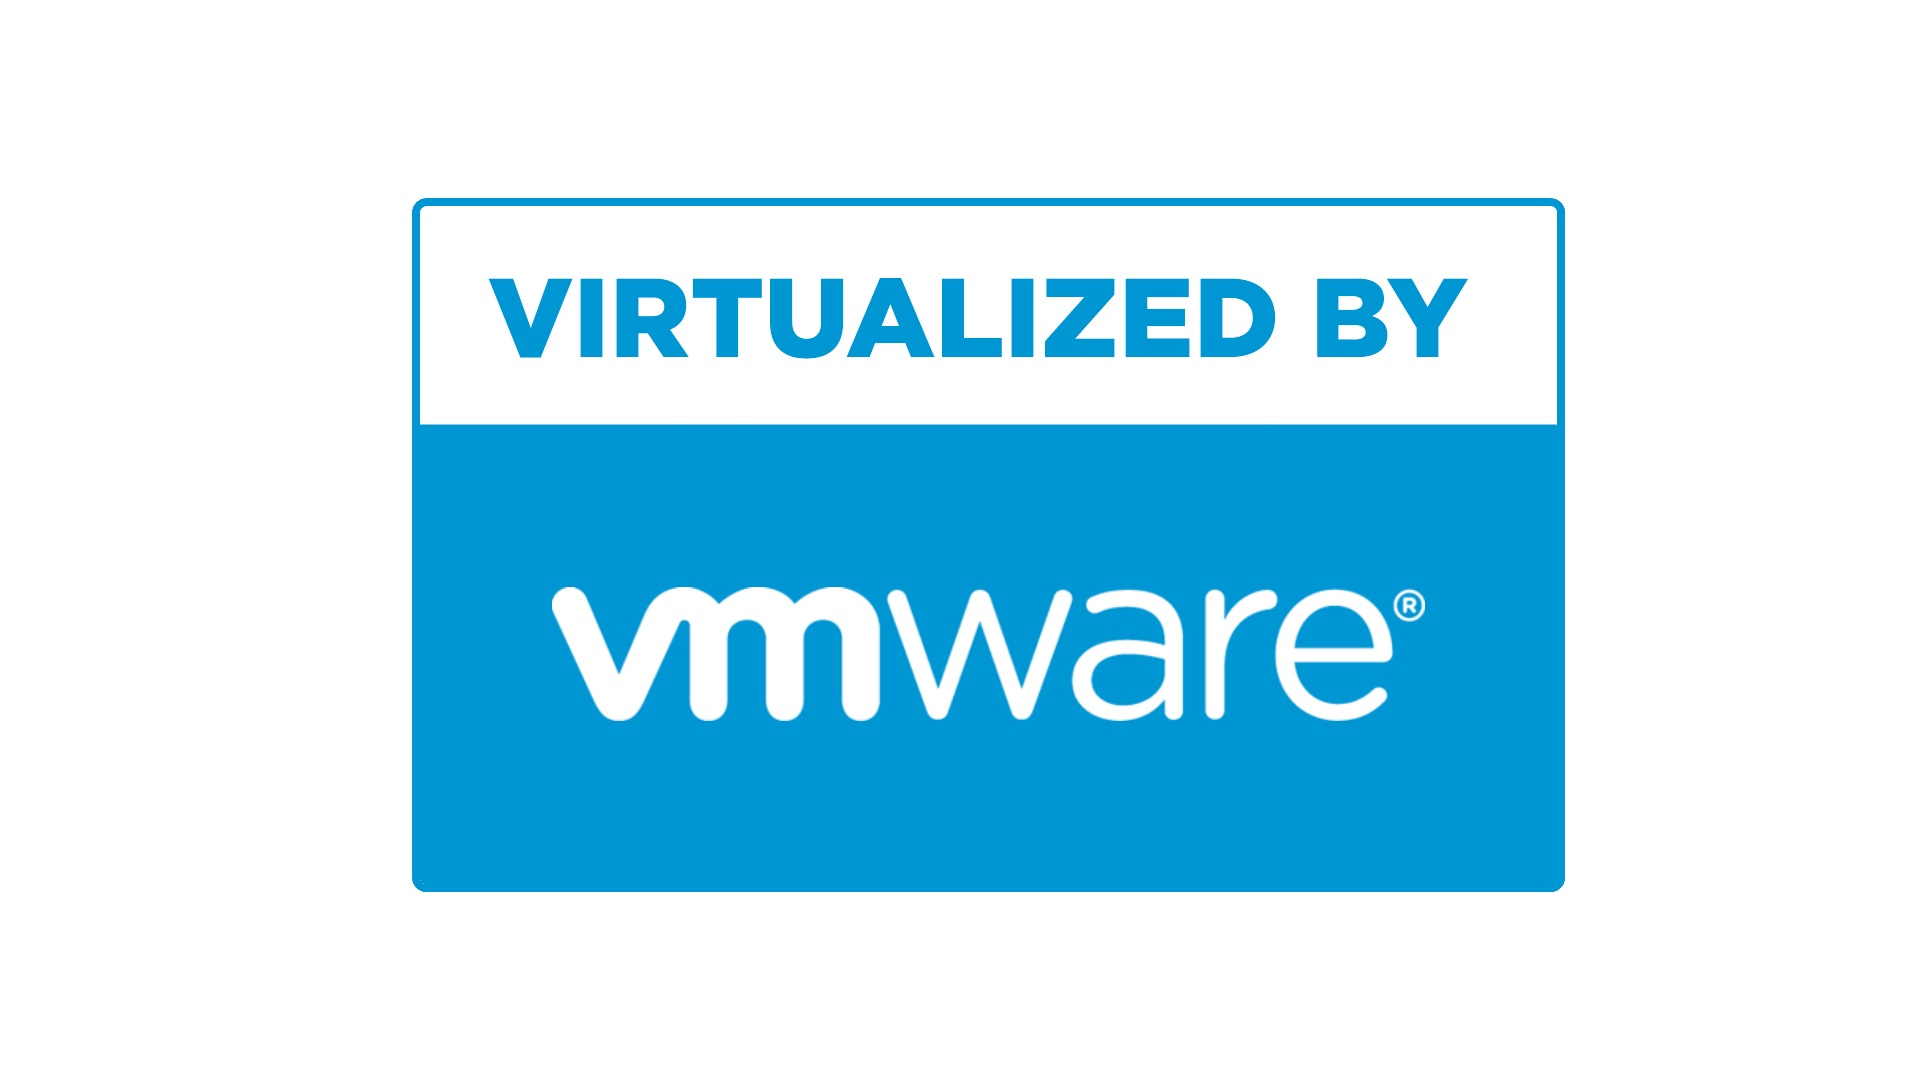 virtualized_by_vmware_1